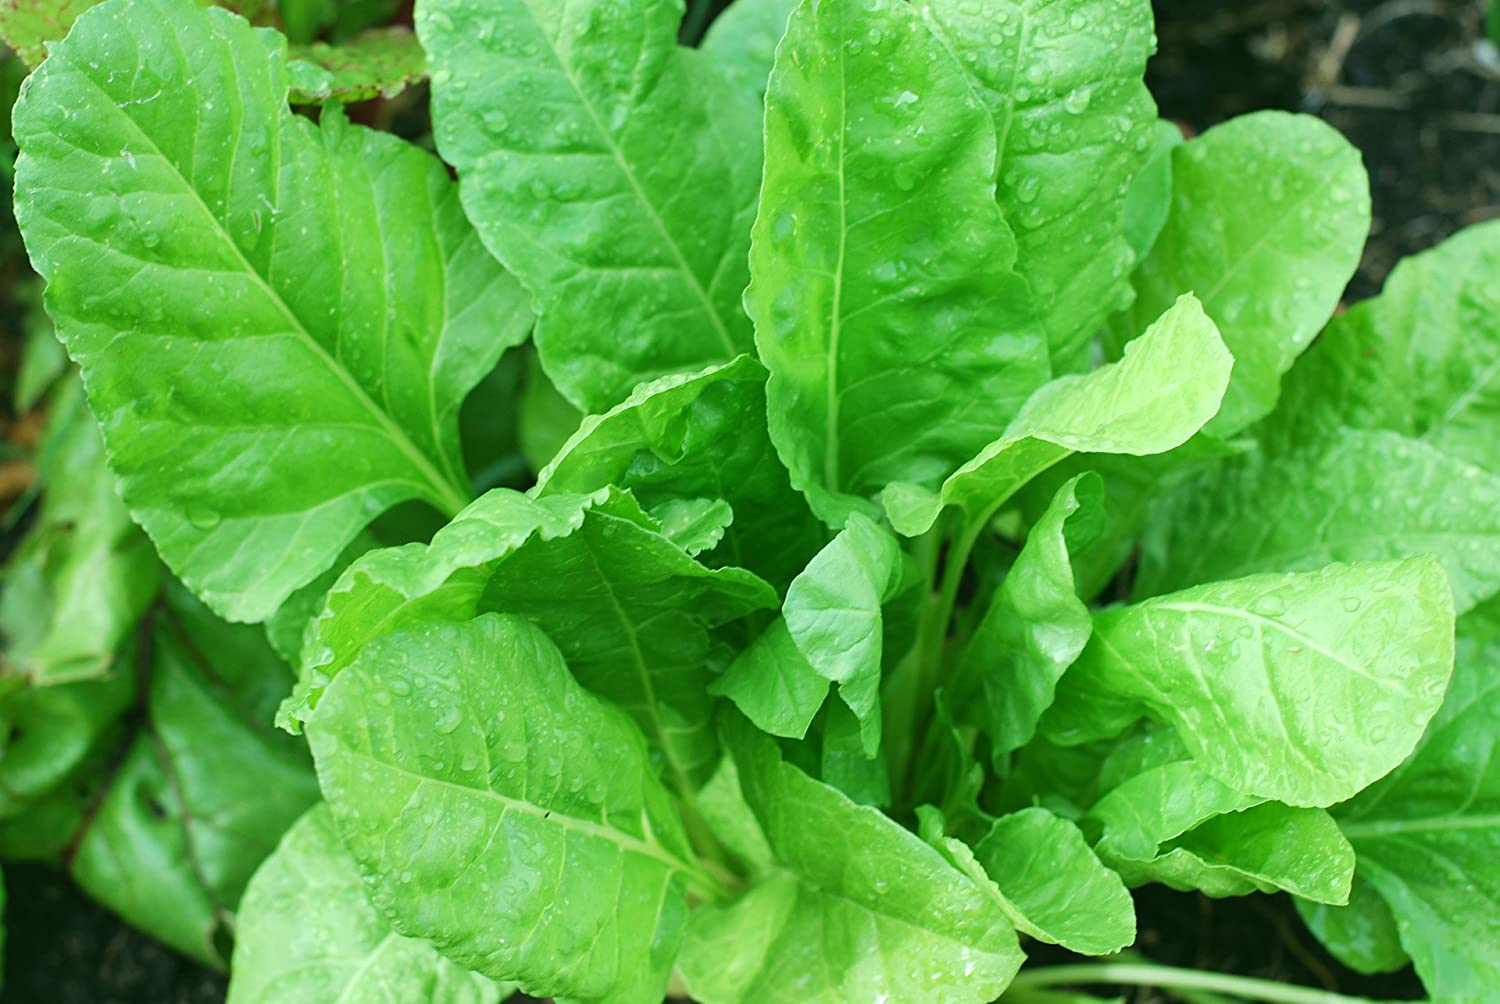 RAJ GARDEN PLANTS Spinach Seeds,Palak Beej,पालक के बीज - MultiCut- (50  Grams) with Free (Green Choulai Seeds 50 Grams and Vegetable Coriander  Seeds 50 Gram) : Amazon.in: Garden & Outdoors